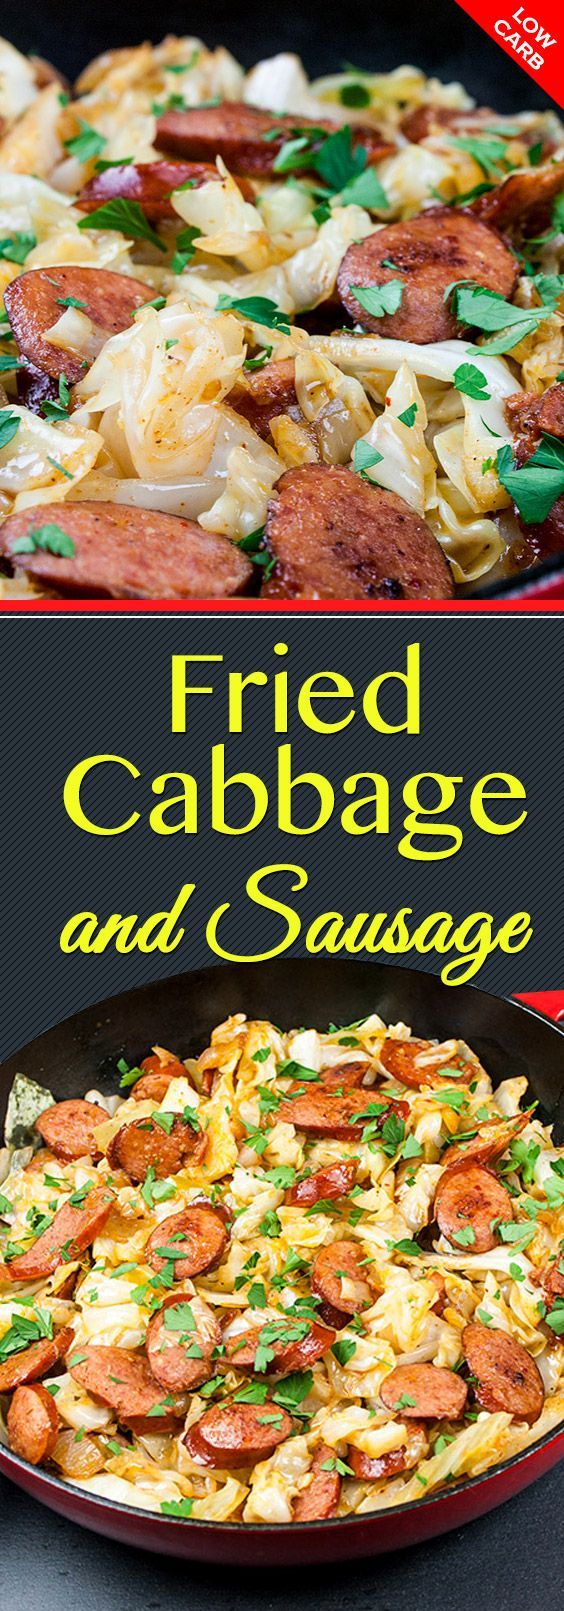 Fried Cabbage and Sausage Recipe